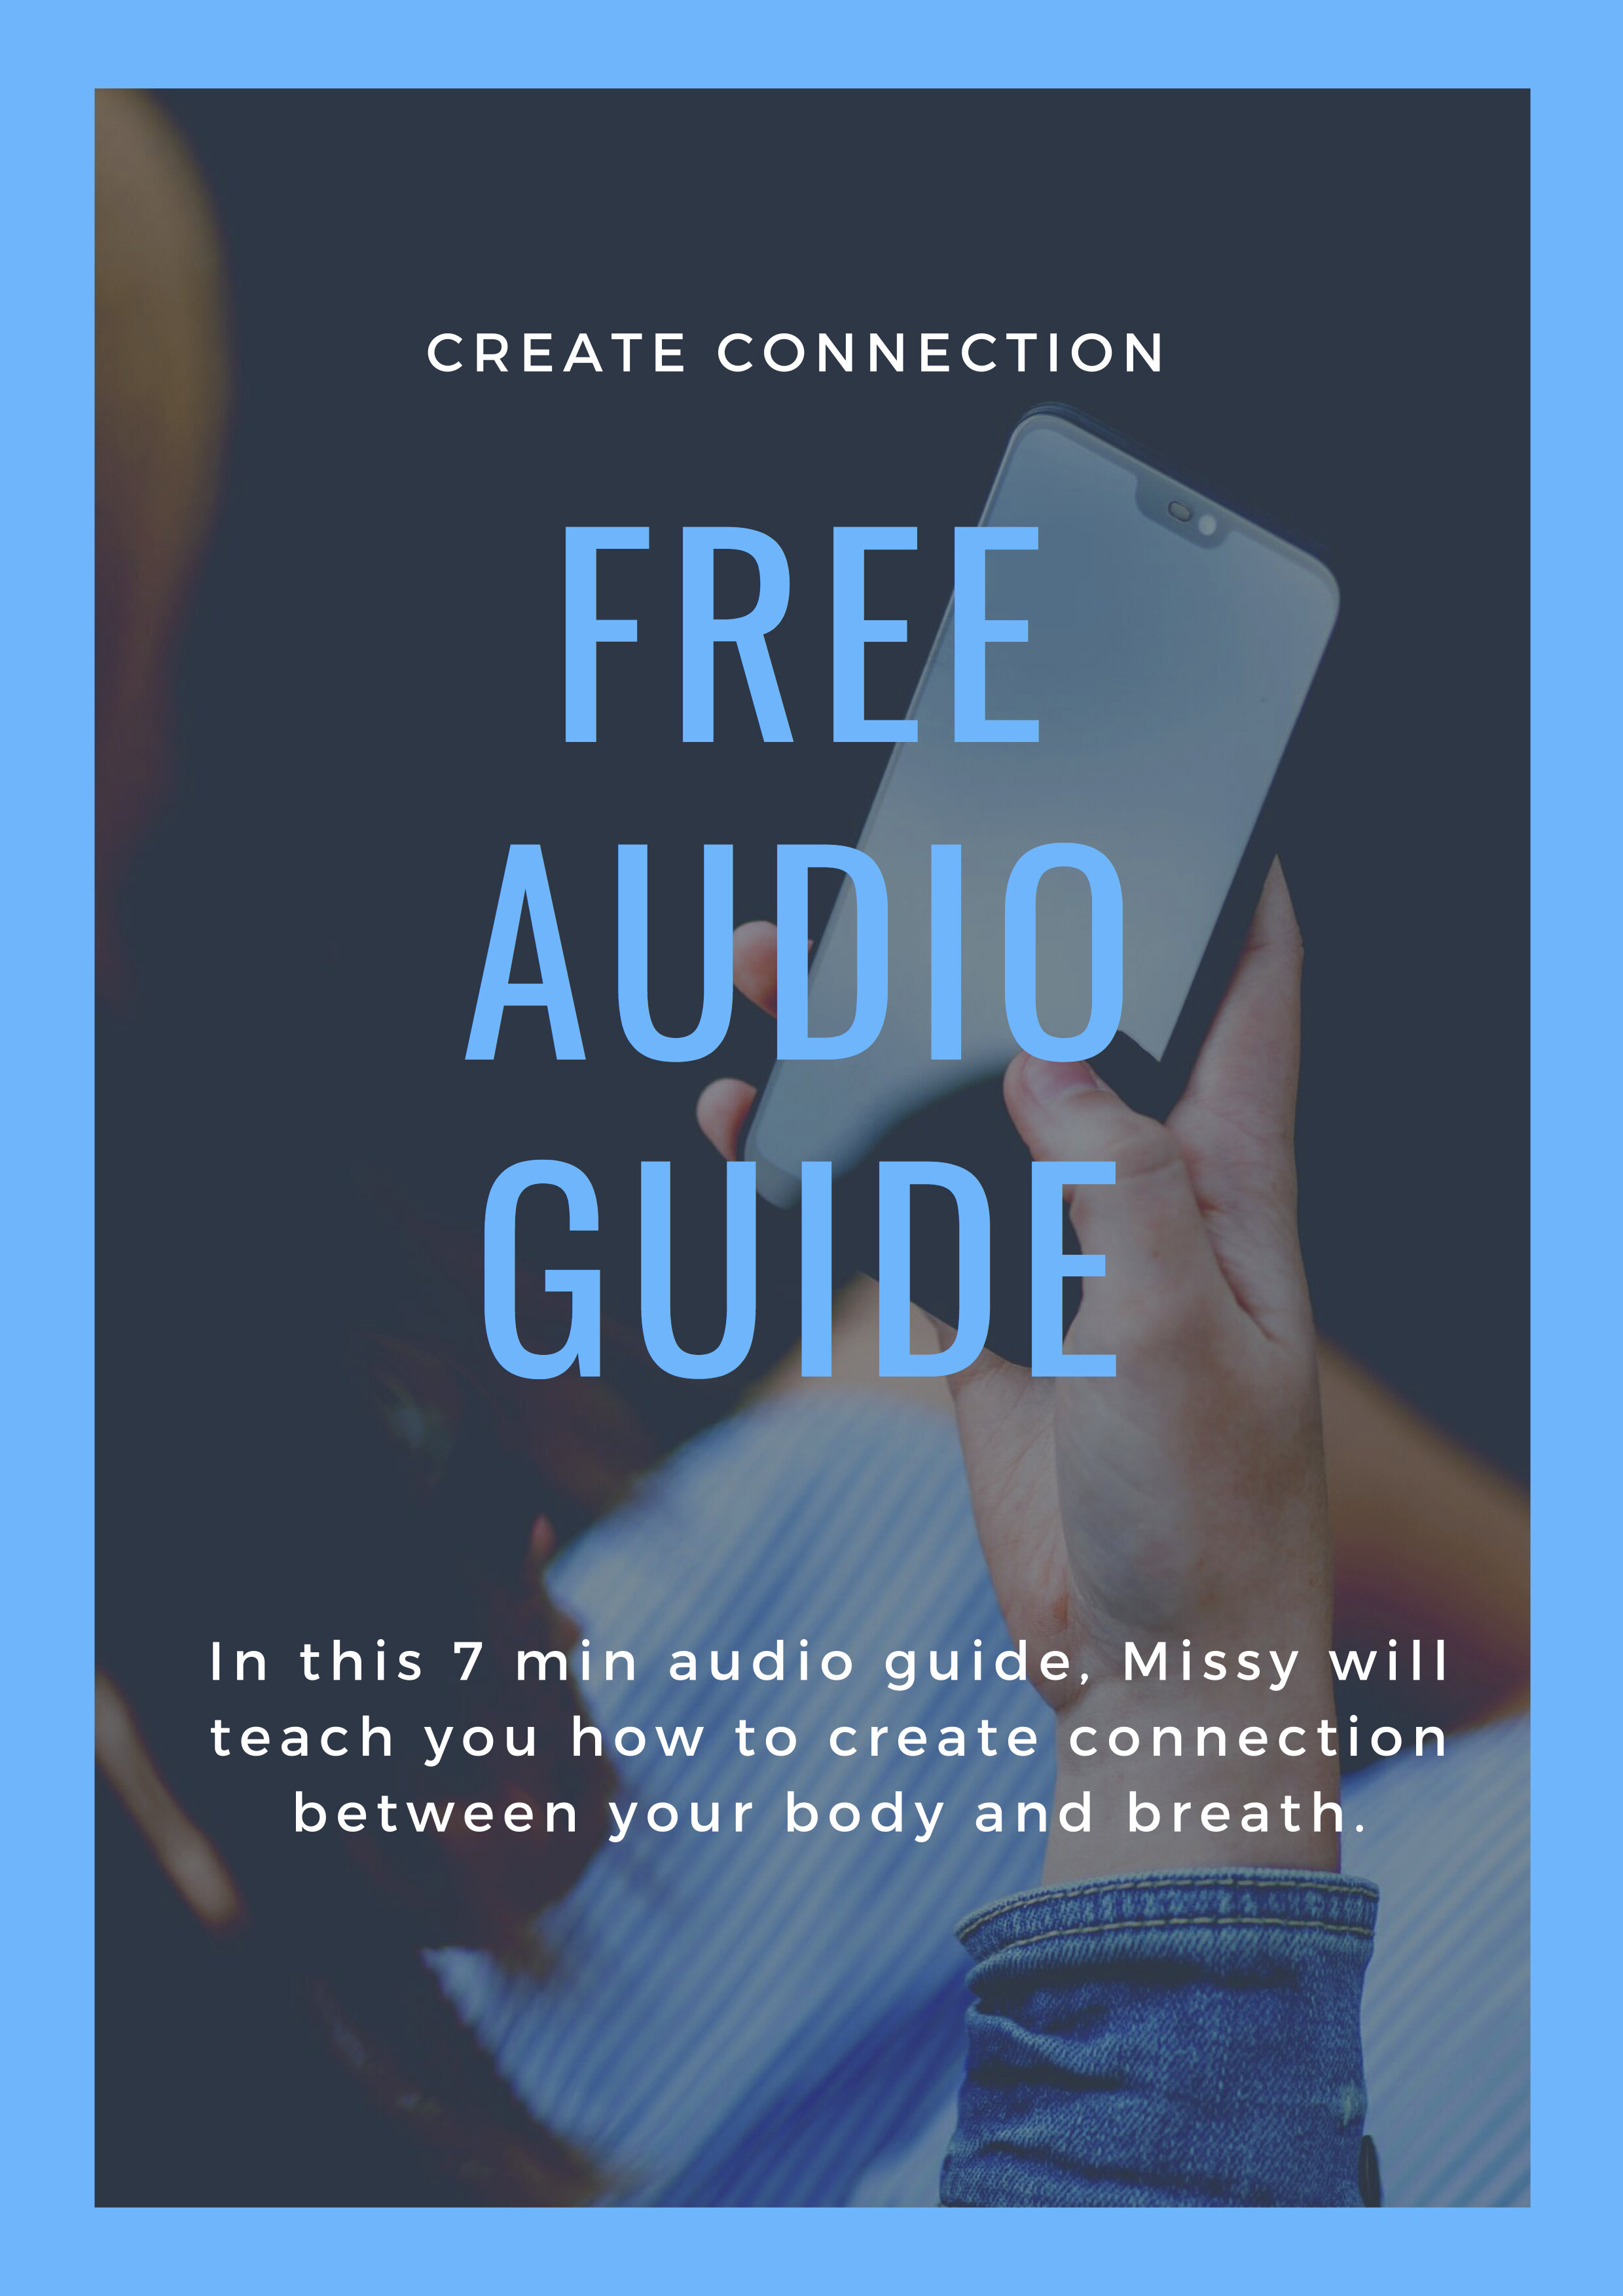 Free_Audio_Guide_Poster.jpg